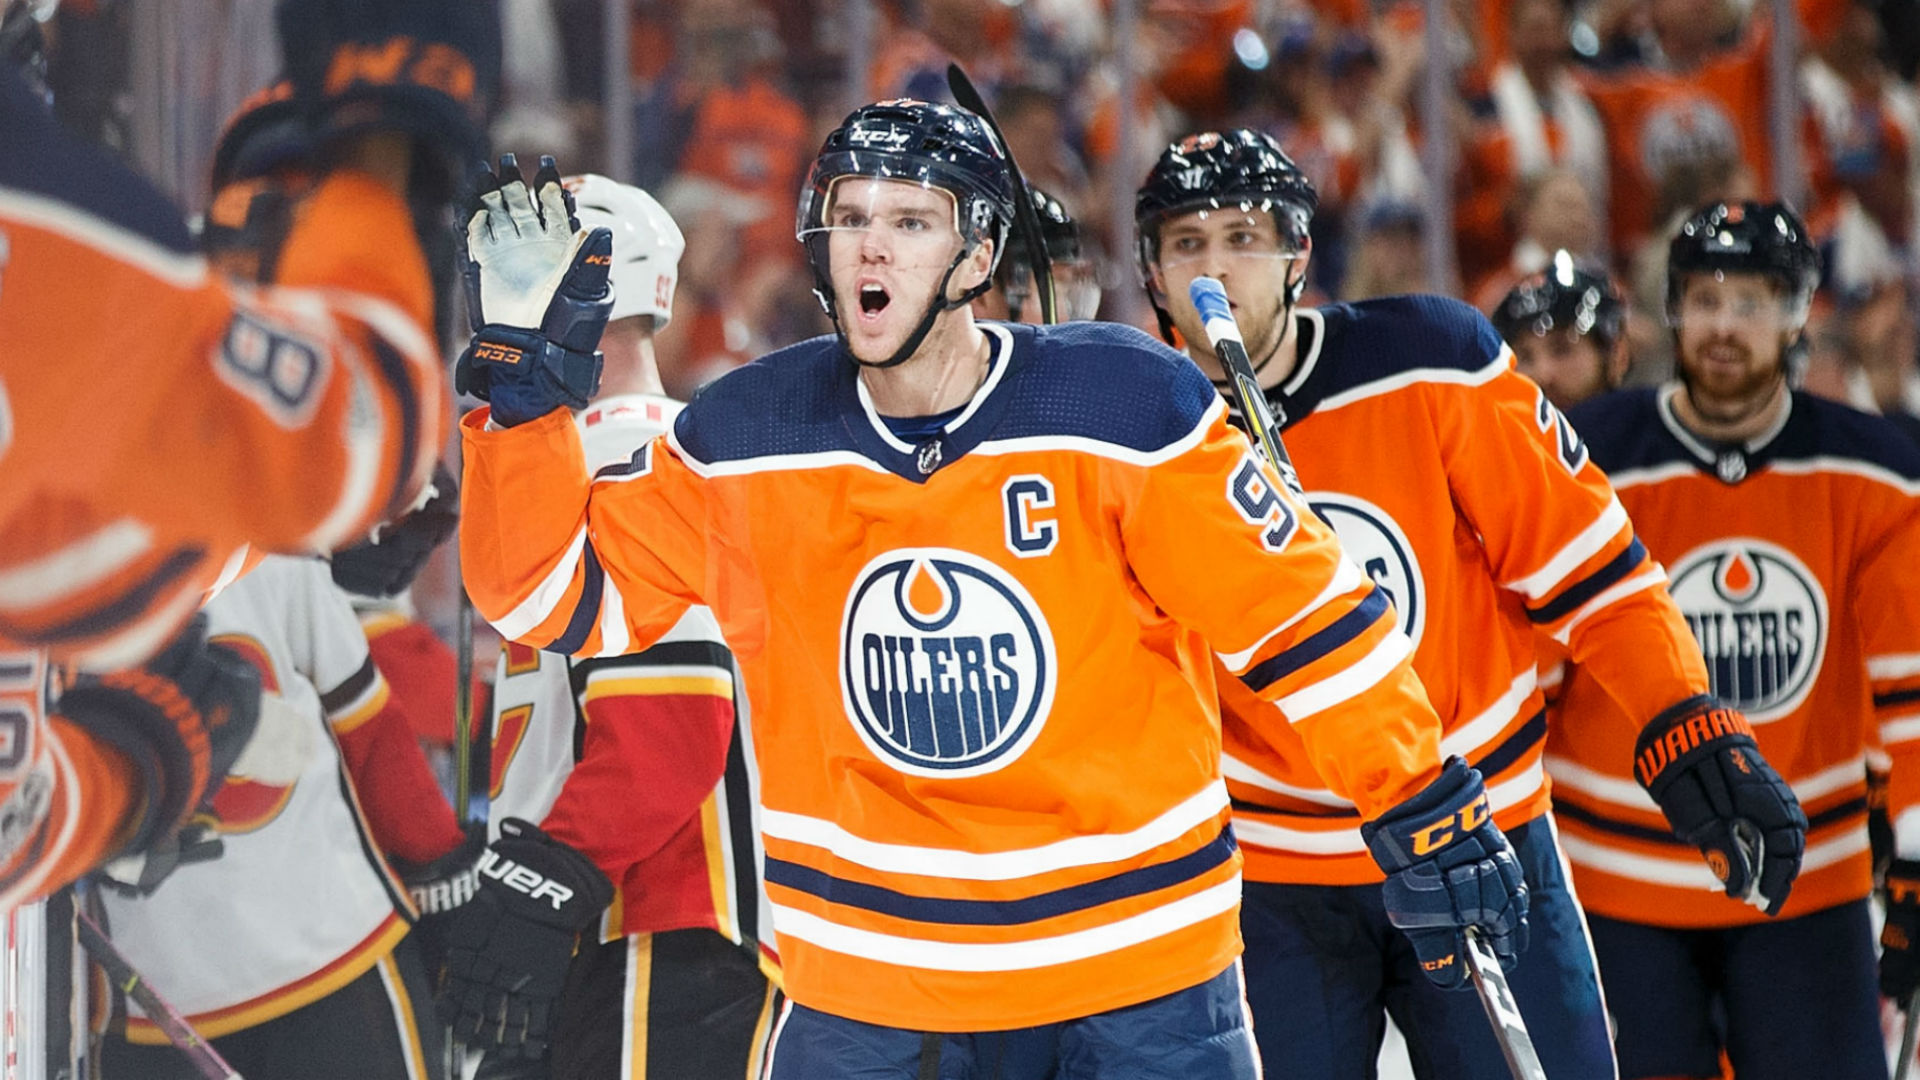 connor-mcdavid-100517-getty-ftr.jpg